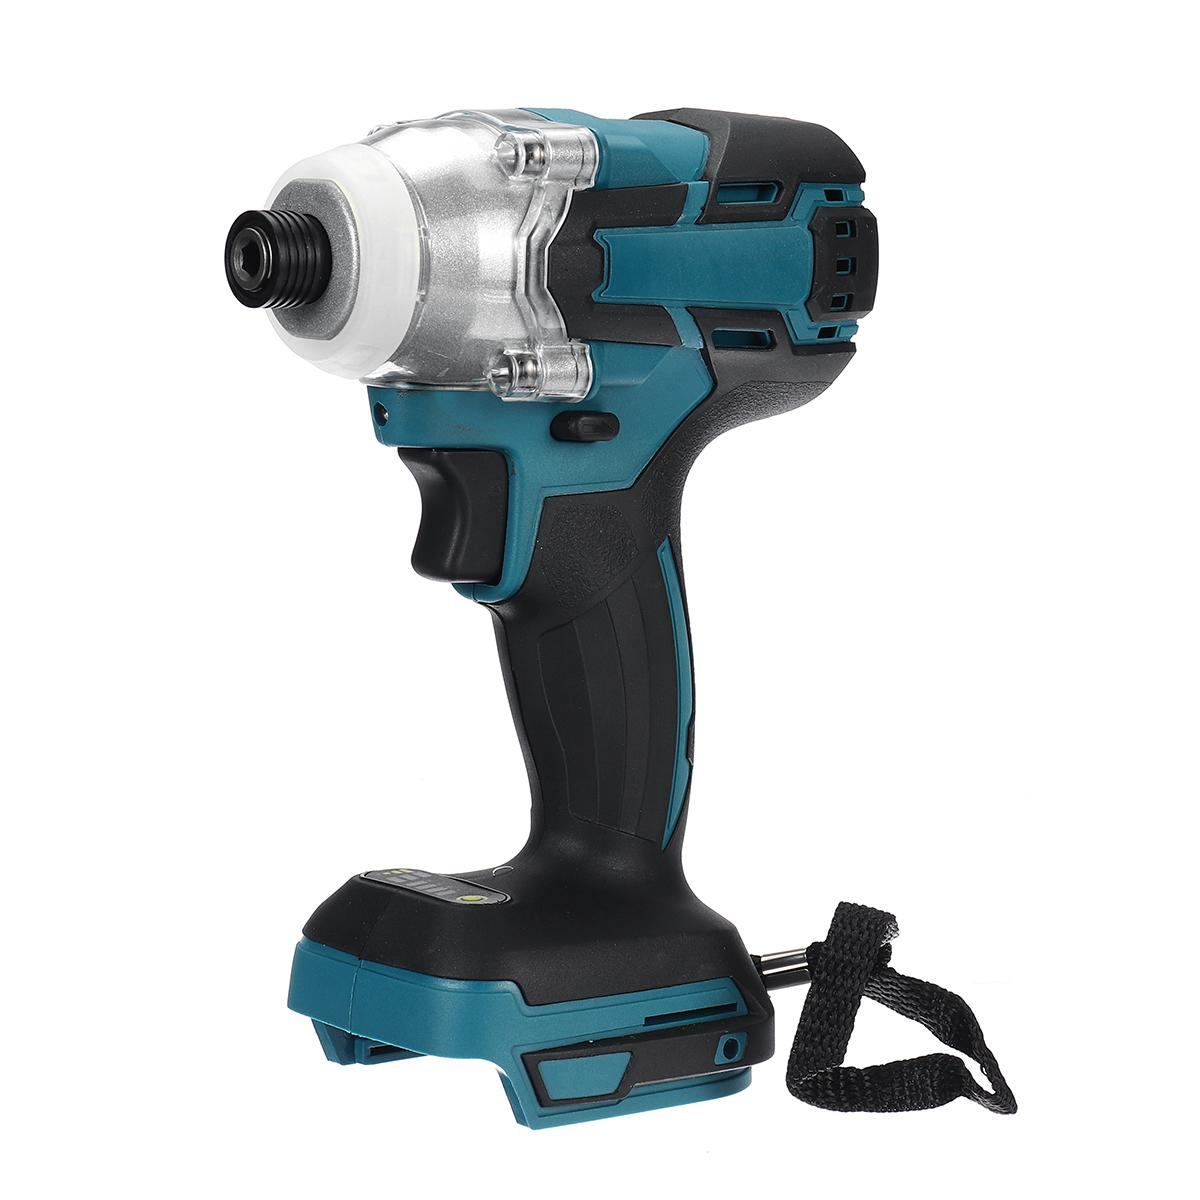 18V 520 N.m Cordless Brushless Electric Screwdriver Speed Impact Wrench Rechargable Drill Driver+ LED Light For Makita Battery